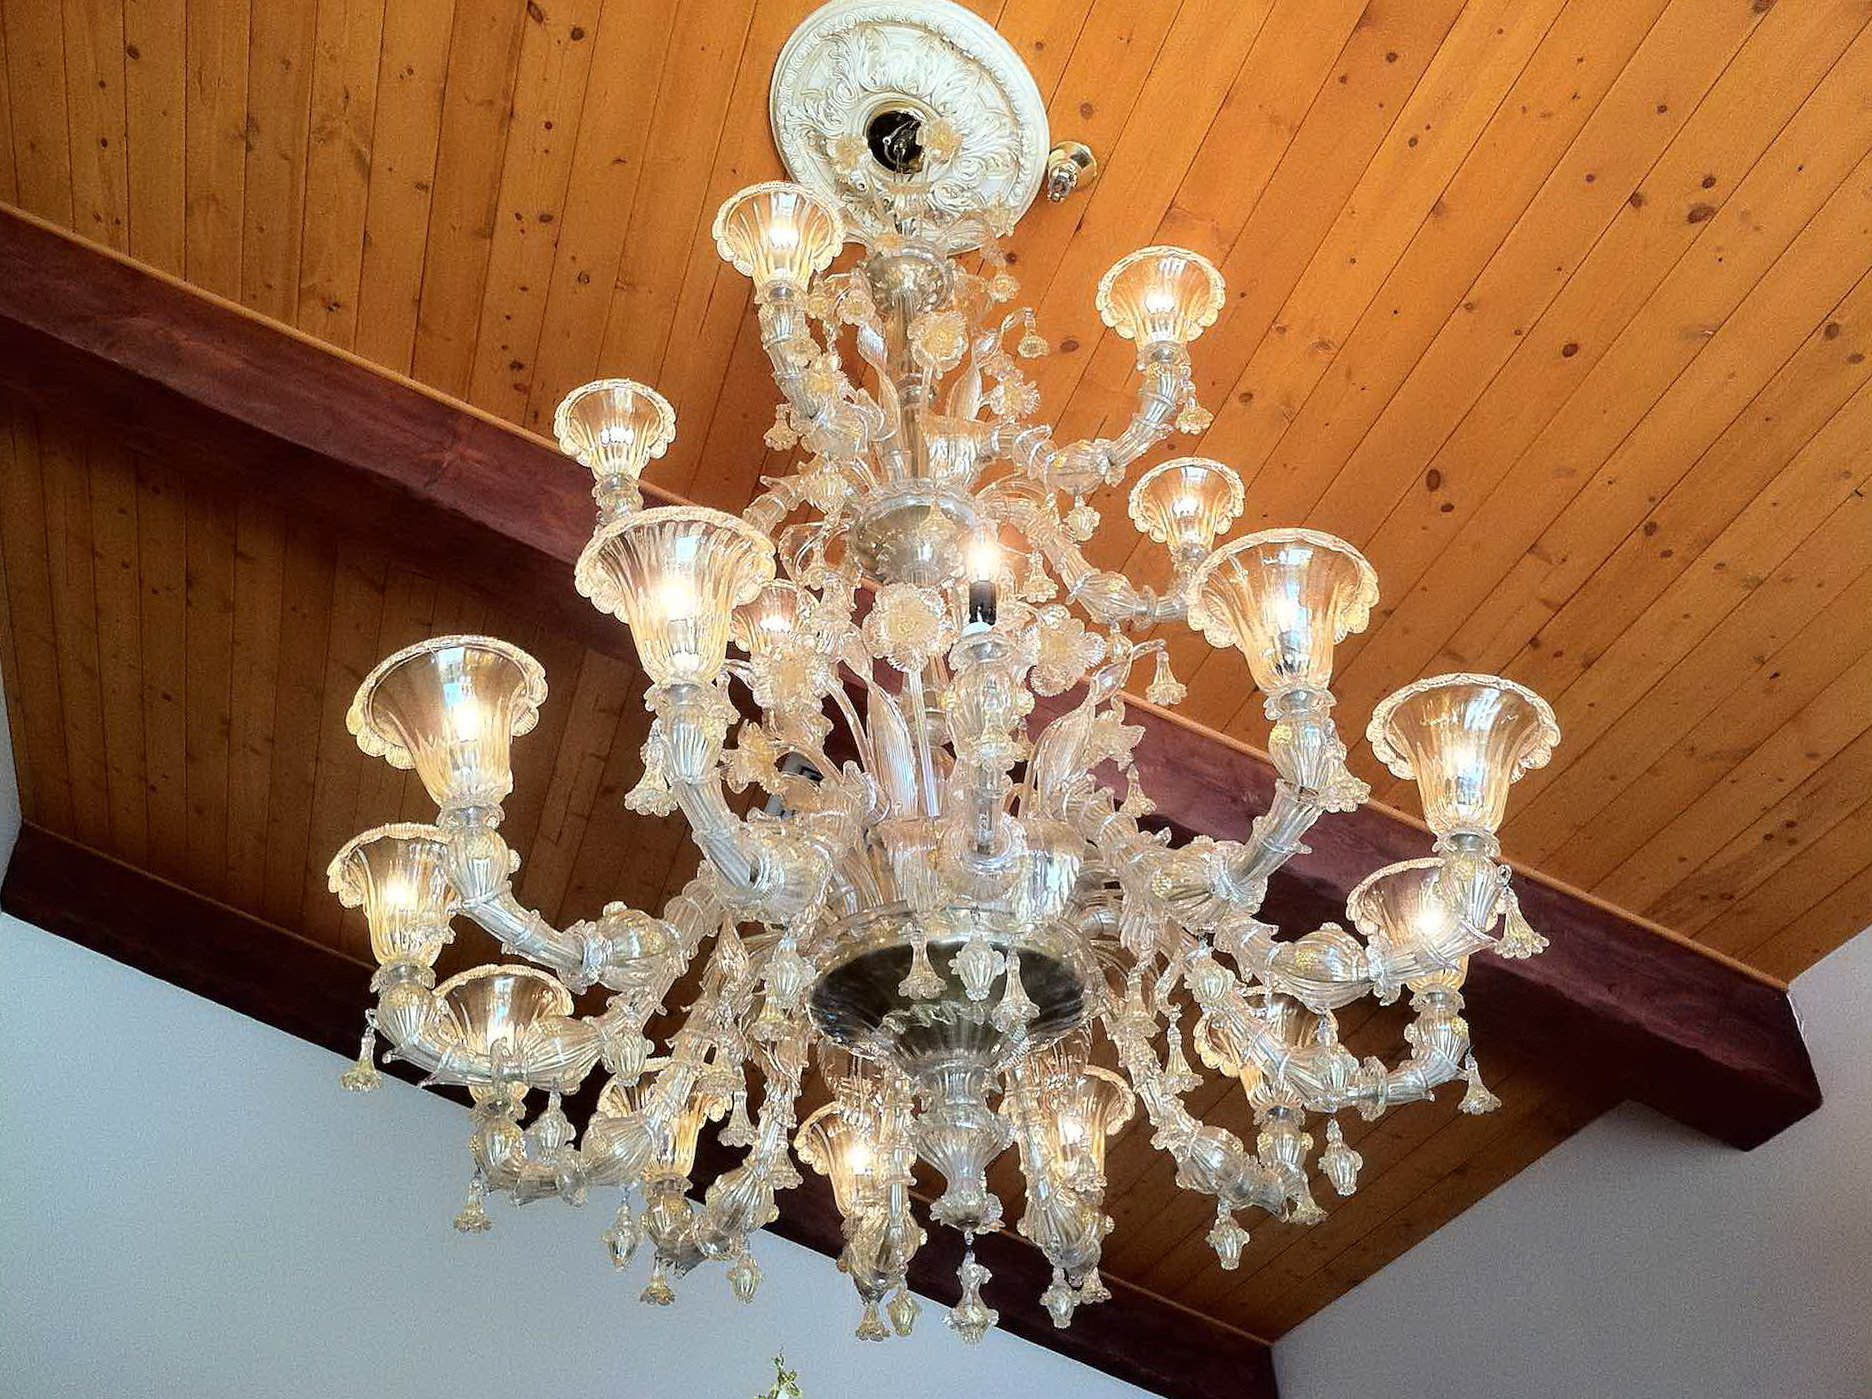 Professional chandelier cleaning toronto musethecollective chandelier cleaning services toronto musethecollective arubaitofo Images